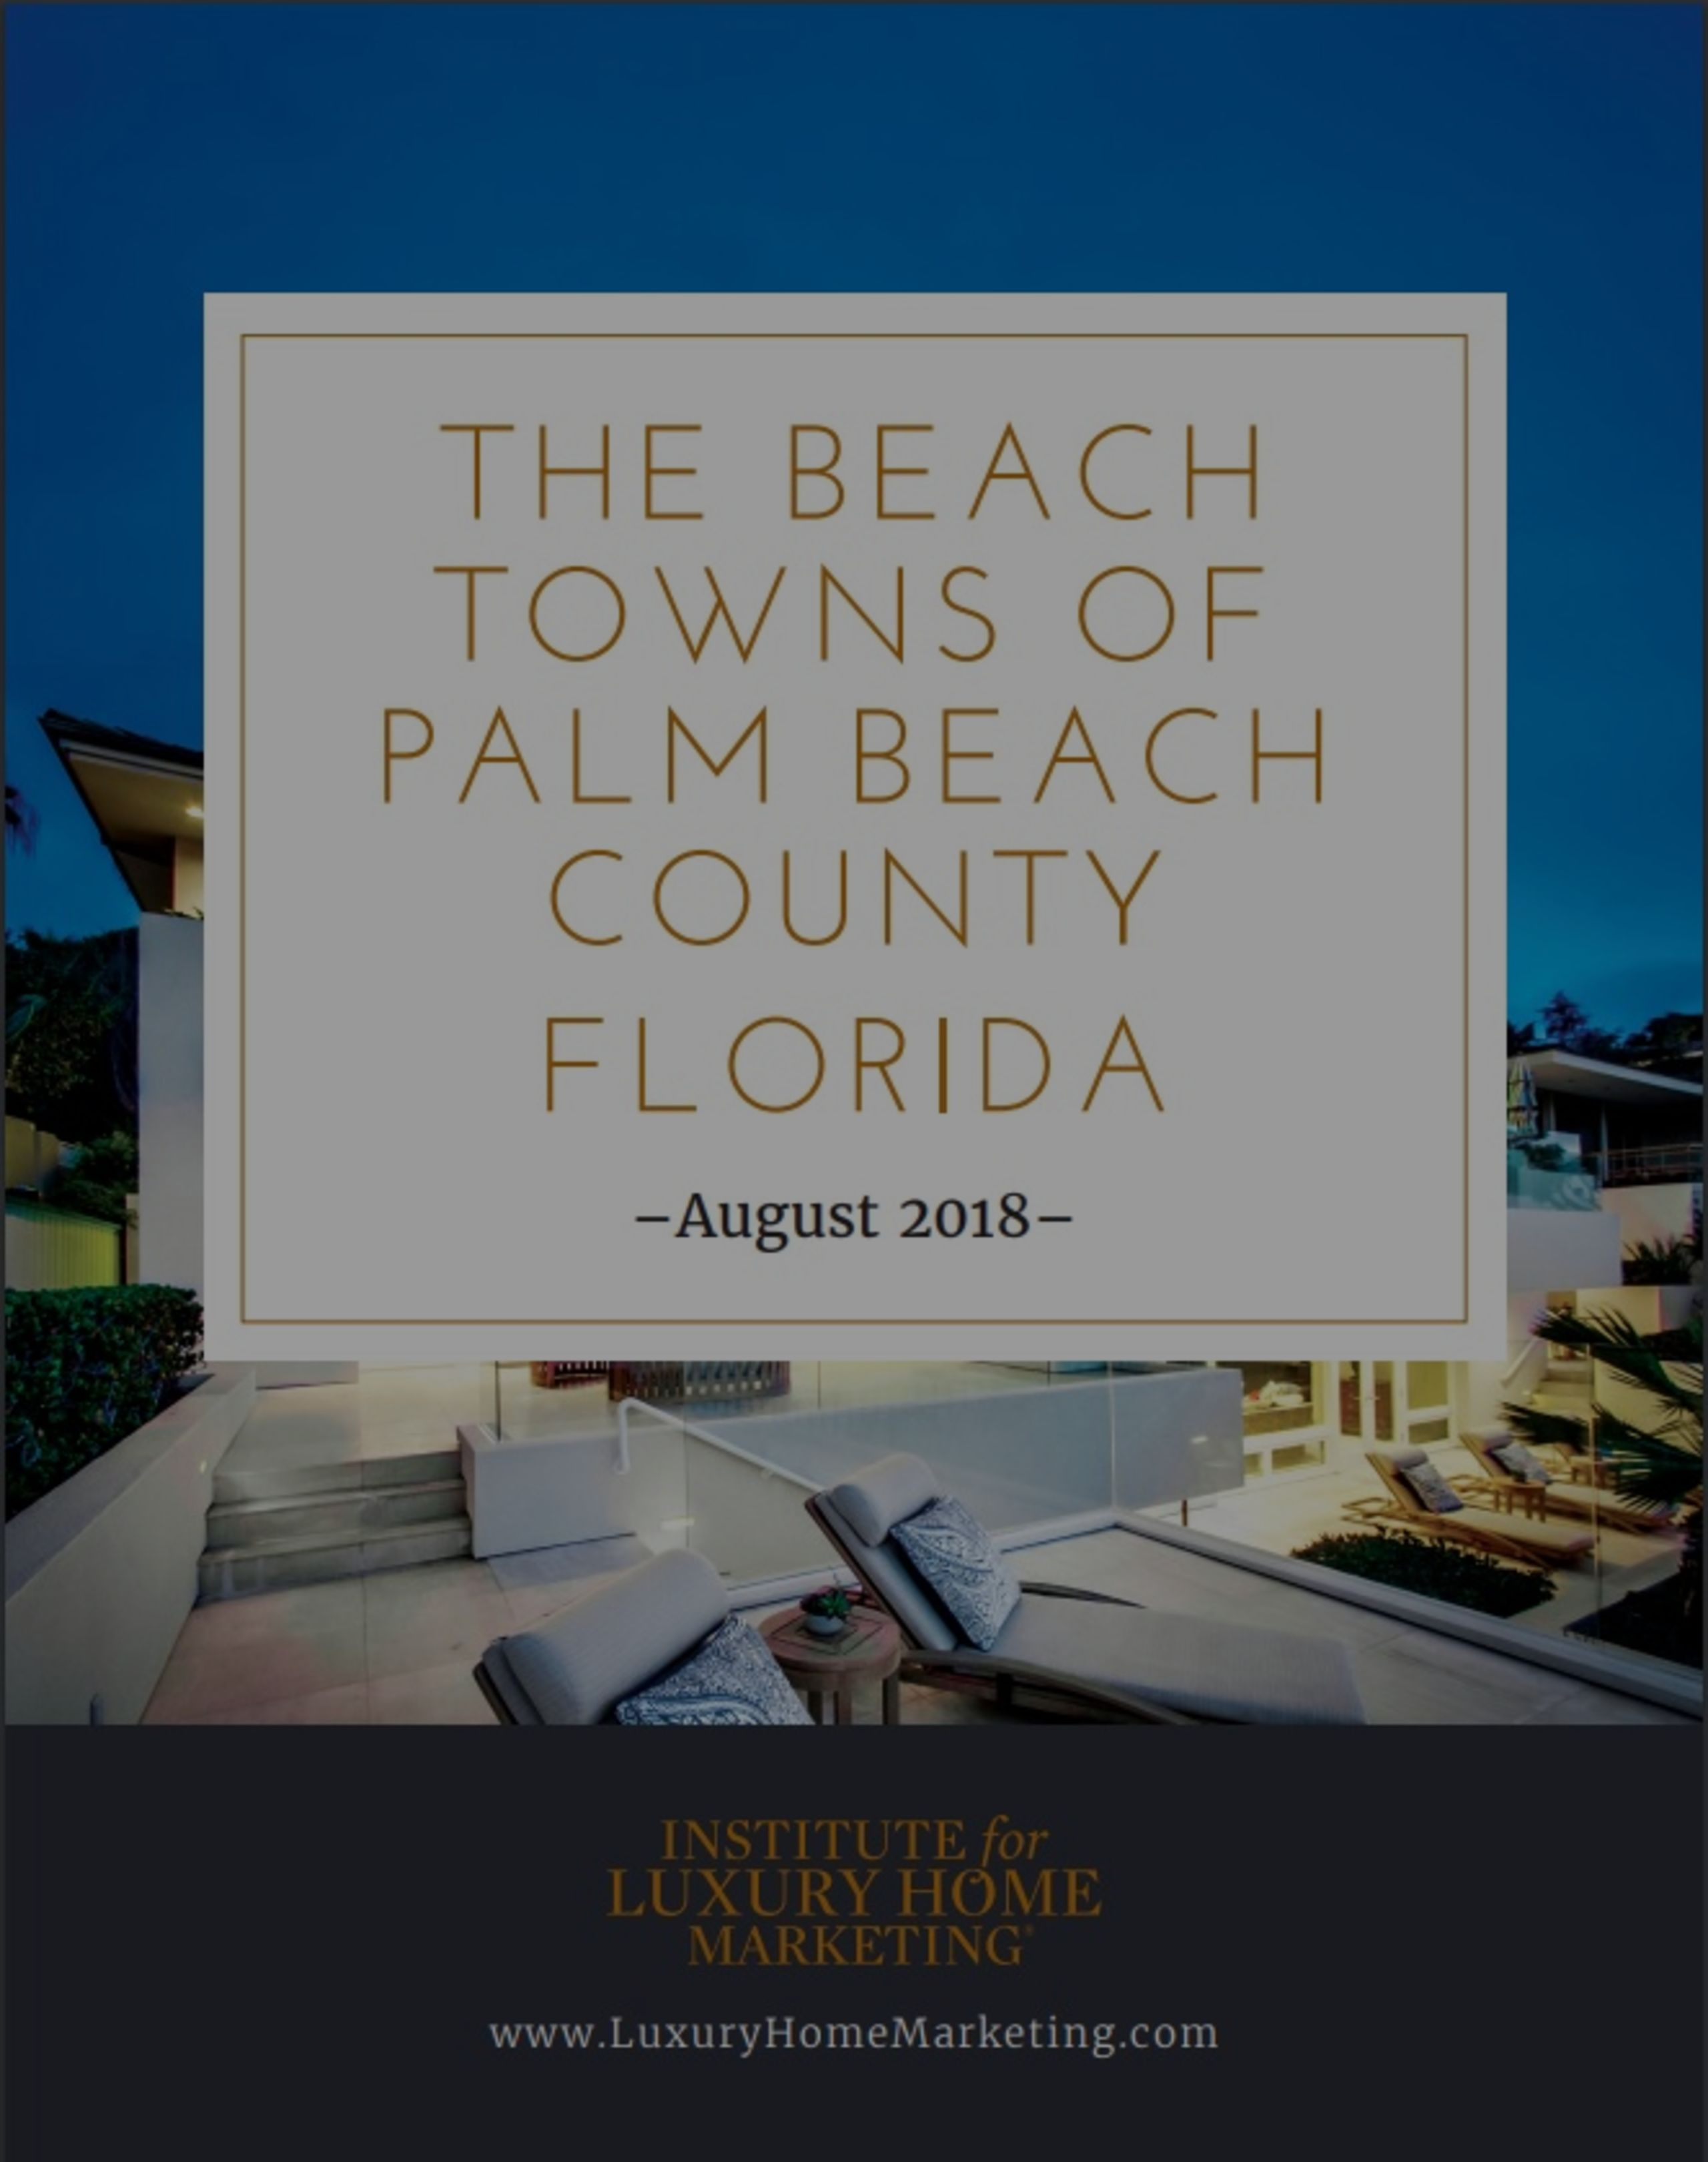 LUXURY MARKET BEACH TOWNS OF THE PALM BEACHES 2018